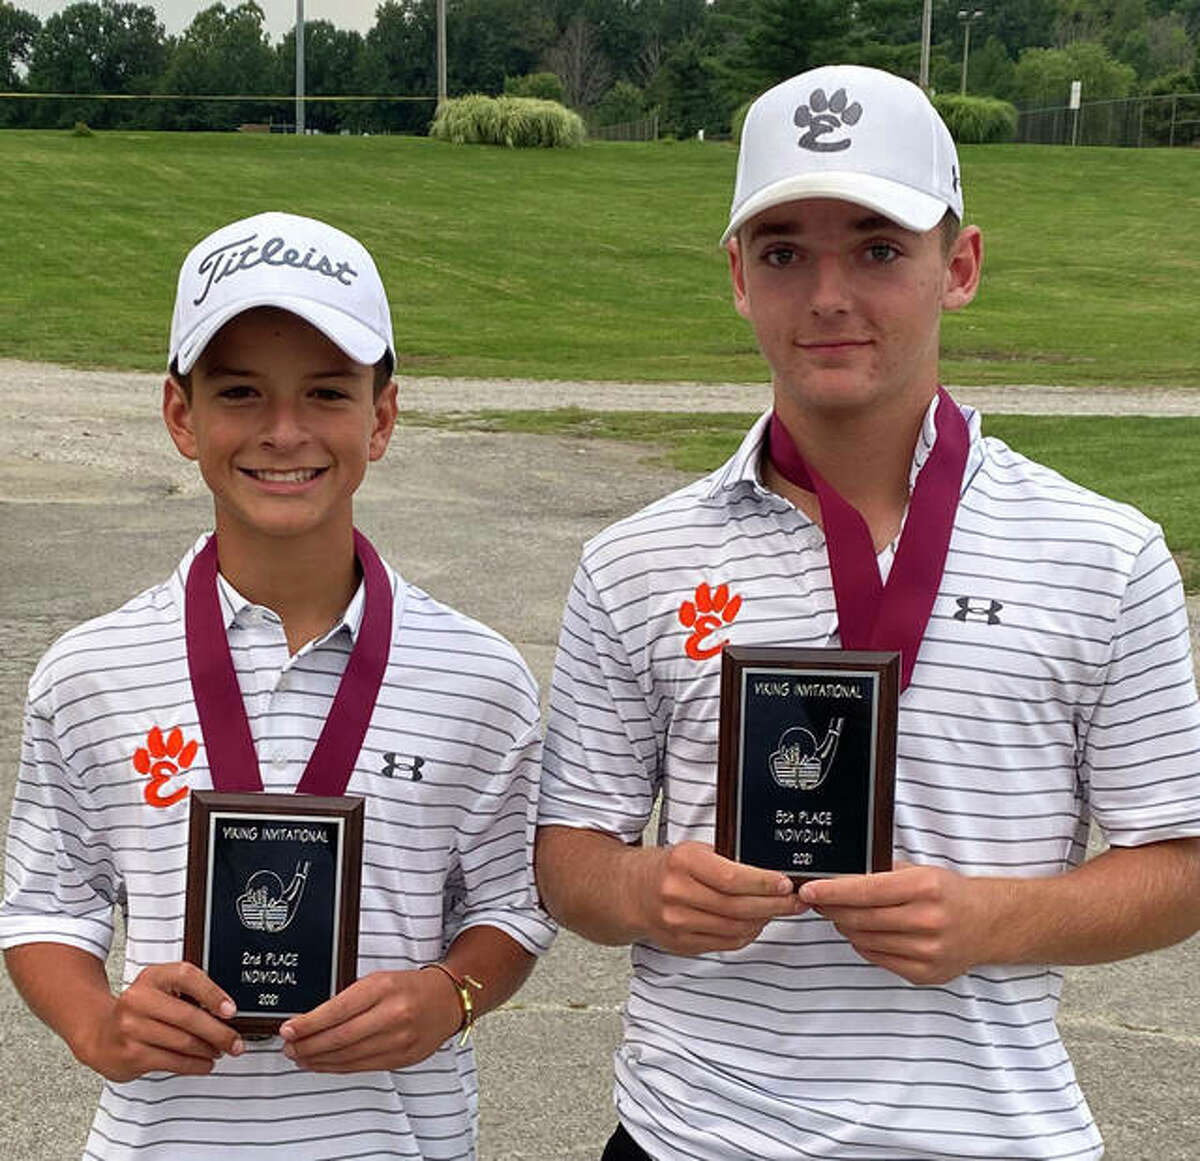 Edwardsville's Ryan Suhre, left, and Joe Chiarodo display their plaques from the Danville Invitational on Friday in Danville.